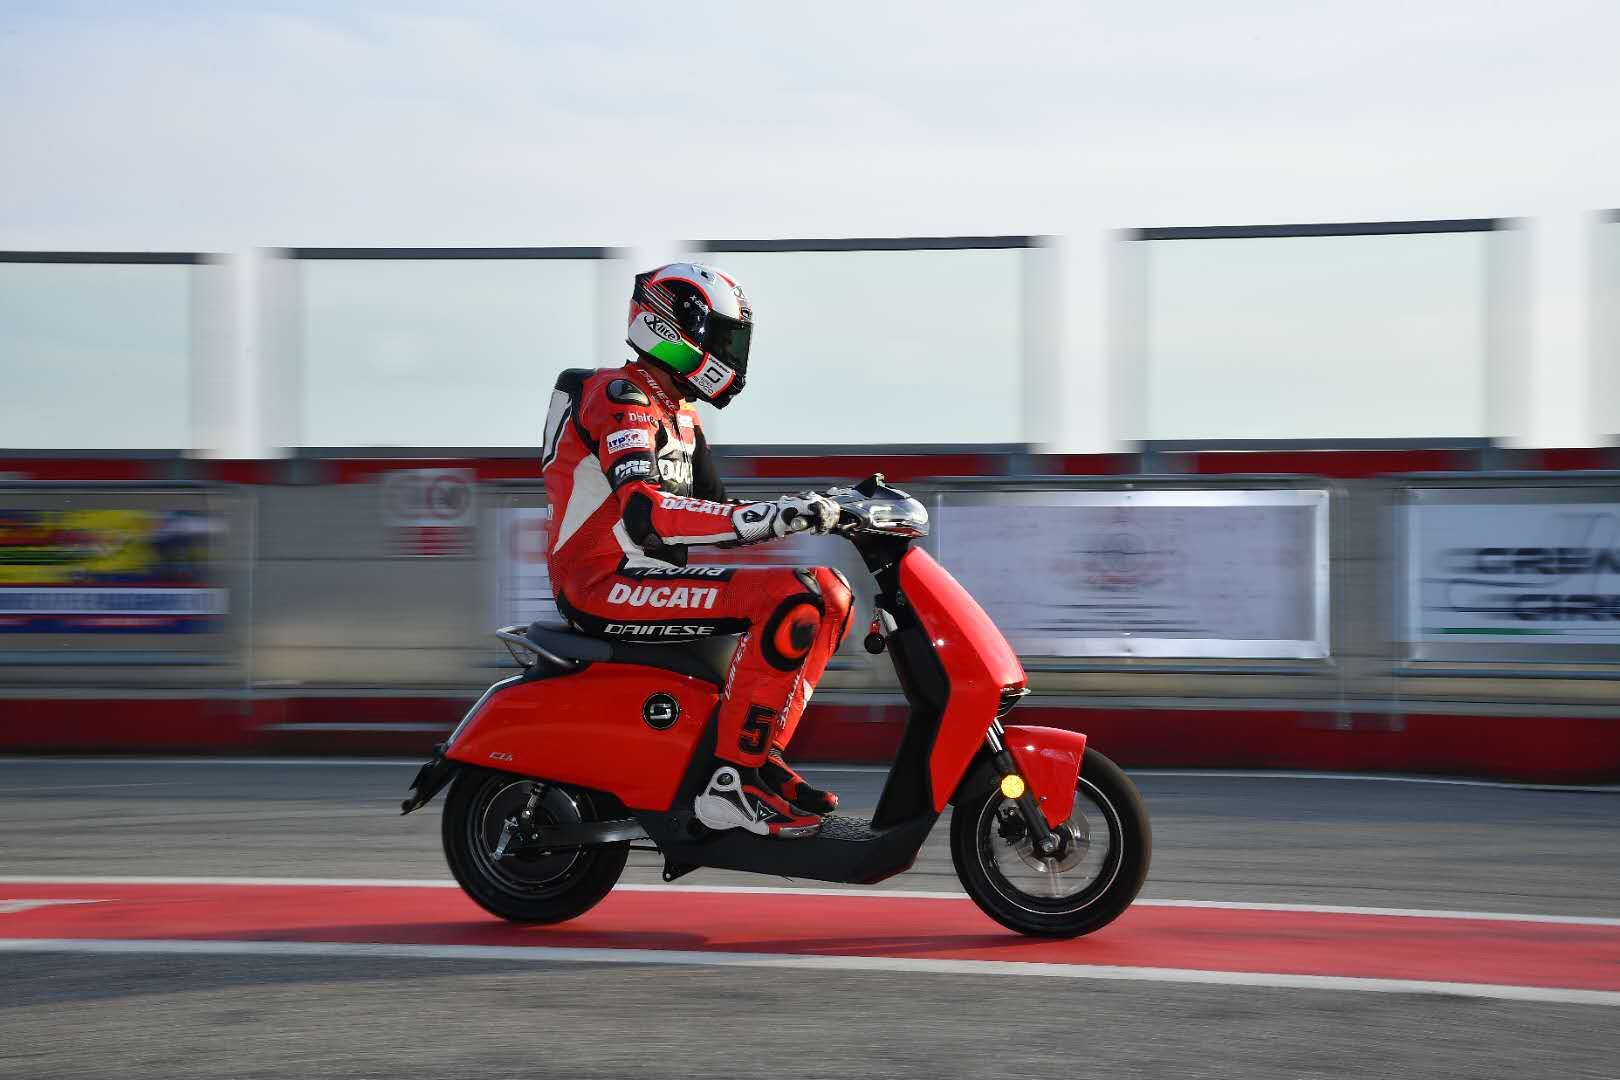 Vmoto shares climb 77 percent following Ducati deal